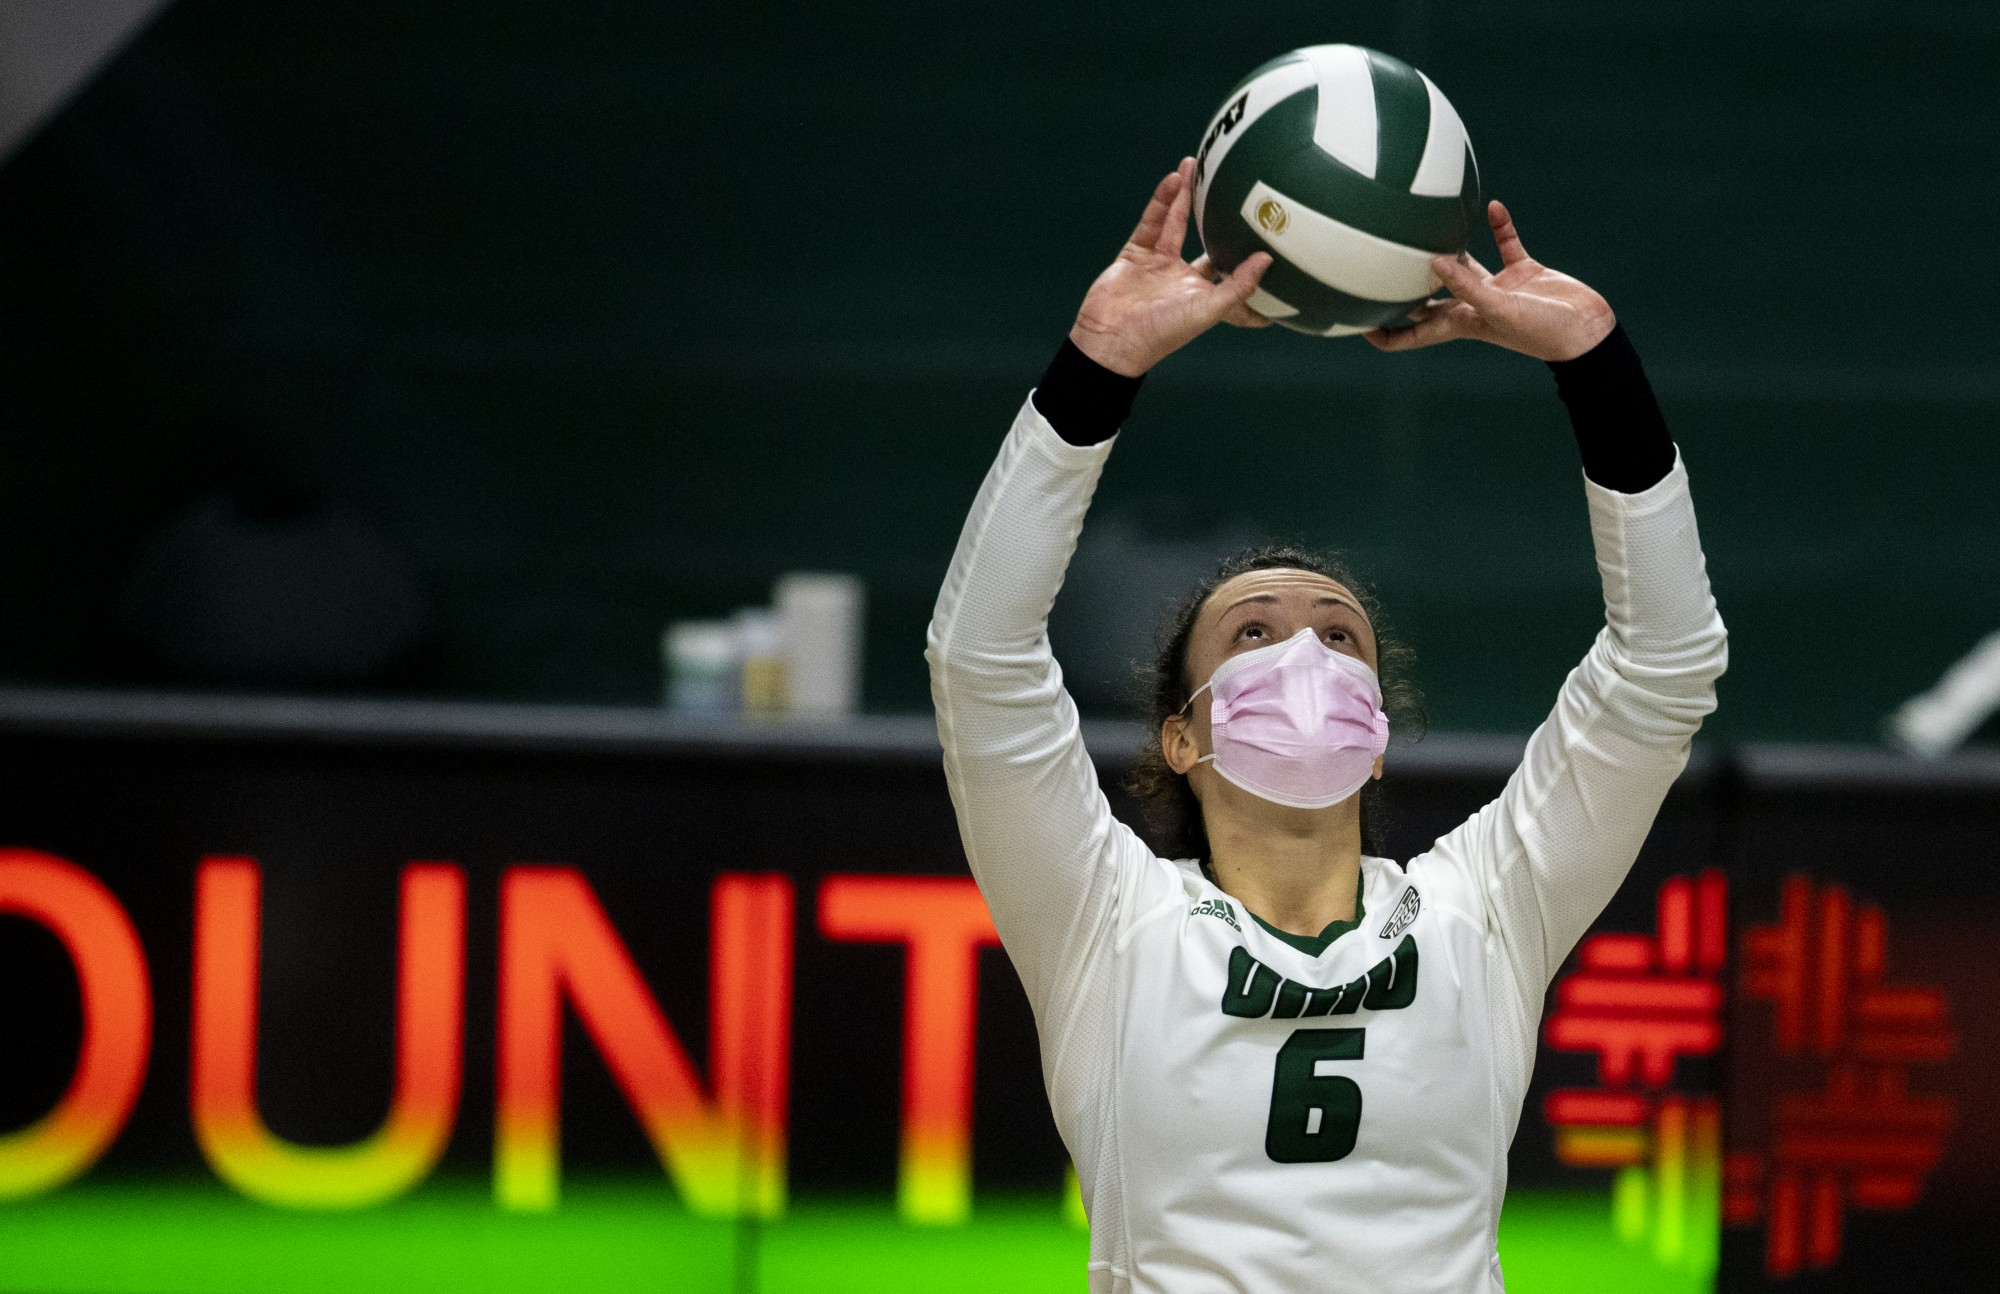 Ohio University setter Vera Giacomazzi (No. 6) sets the ball to middle hitter Tia Jimerson during the home game against Central Michigan University on Saturday, Jan. 23, 2021, in Athens, Ohio.